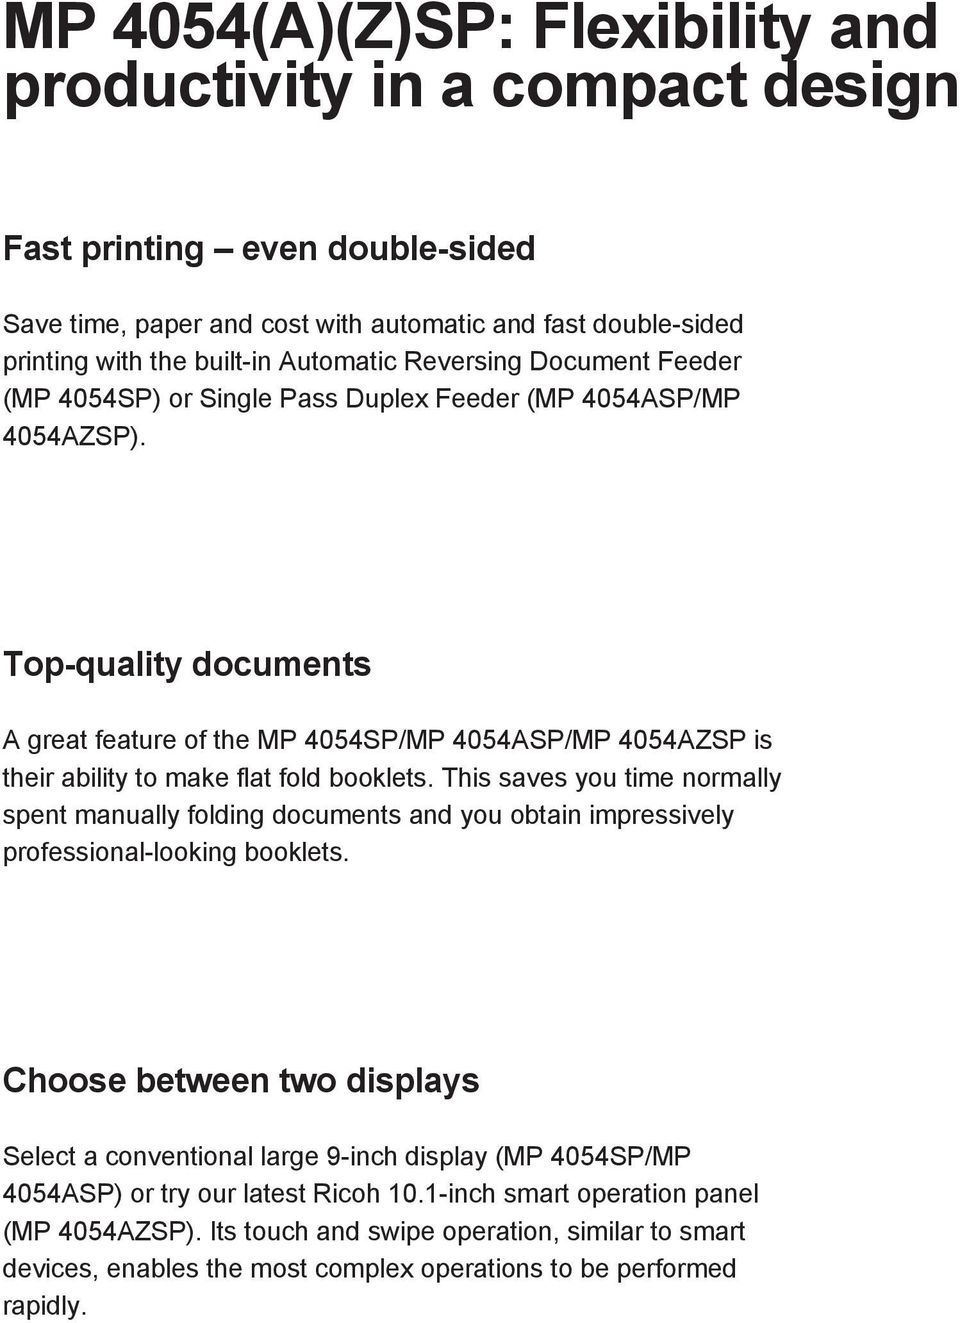 Top-quality documents A great feature of the MP 4054SP/MP 4054ASP/MP 4054AZSP is their ability to make flat fold booklets.